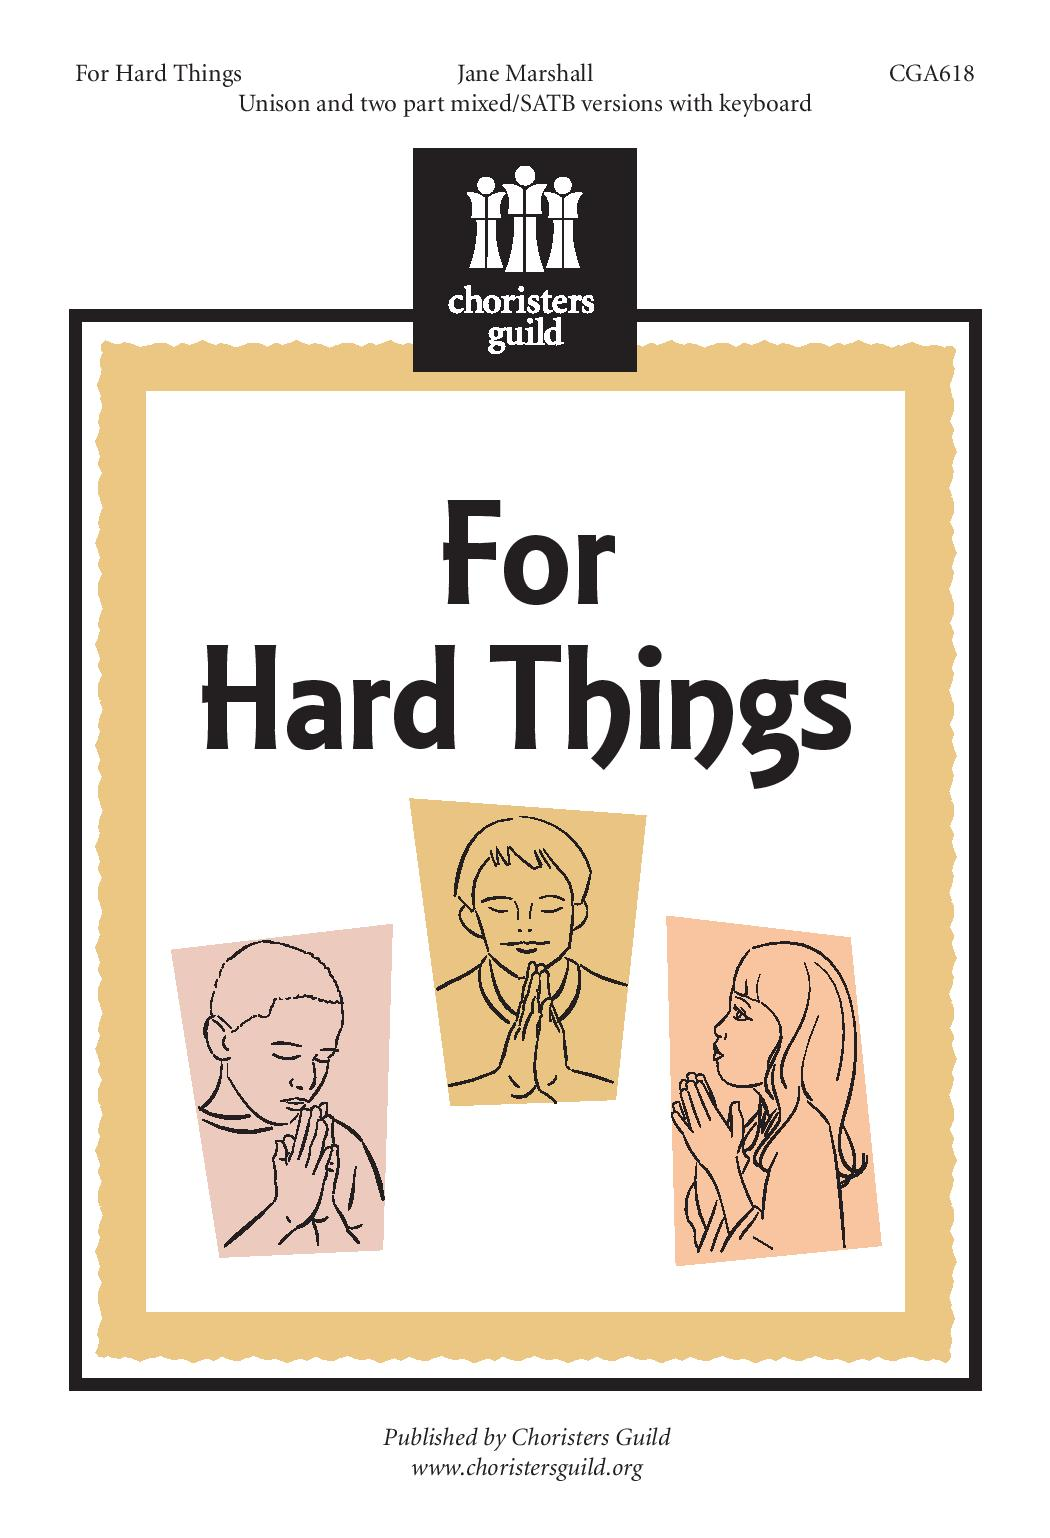 For Hard Things